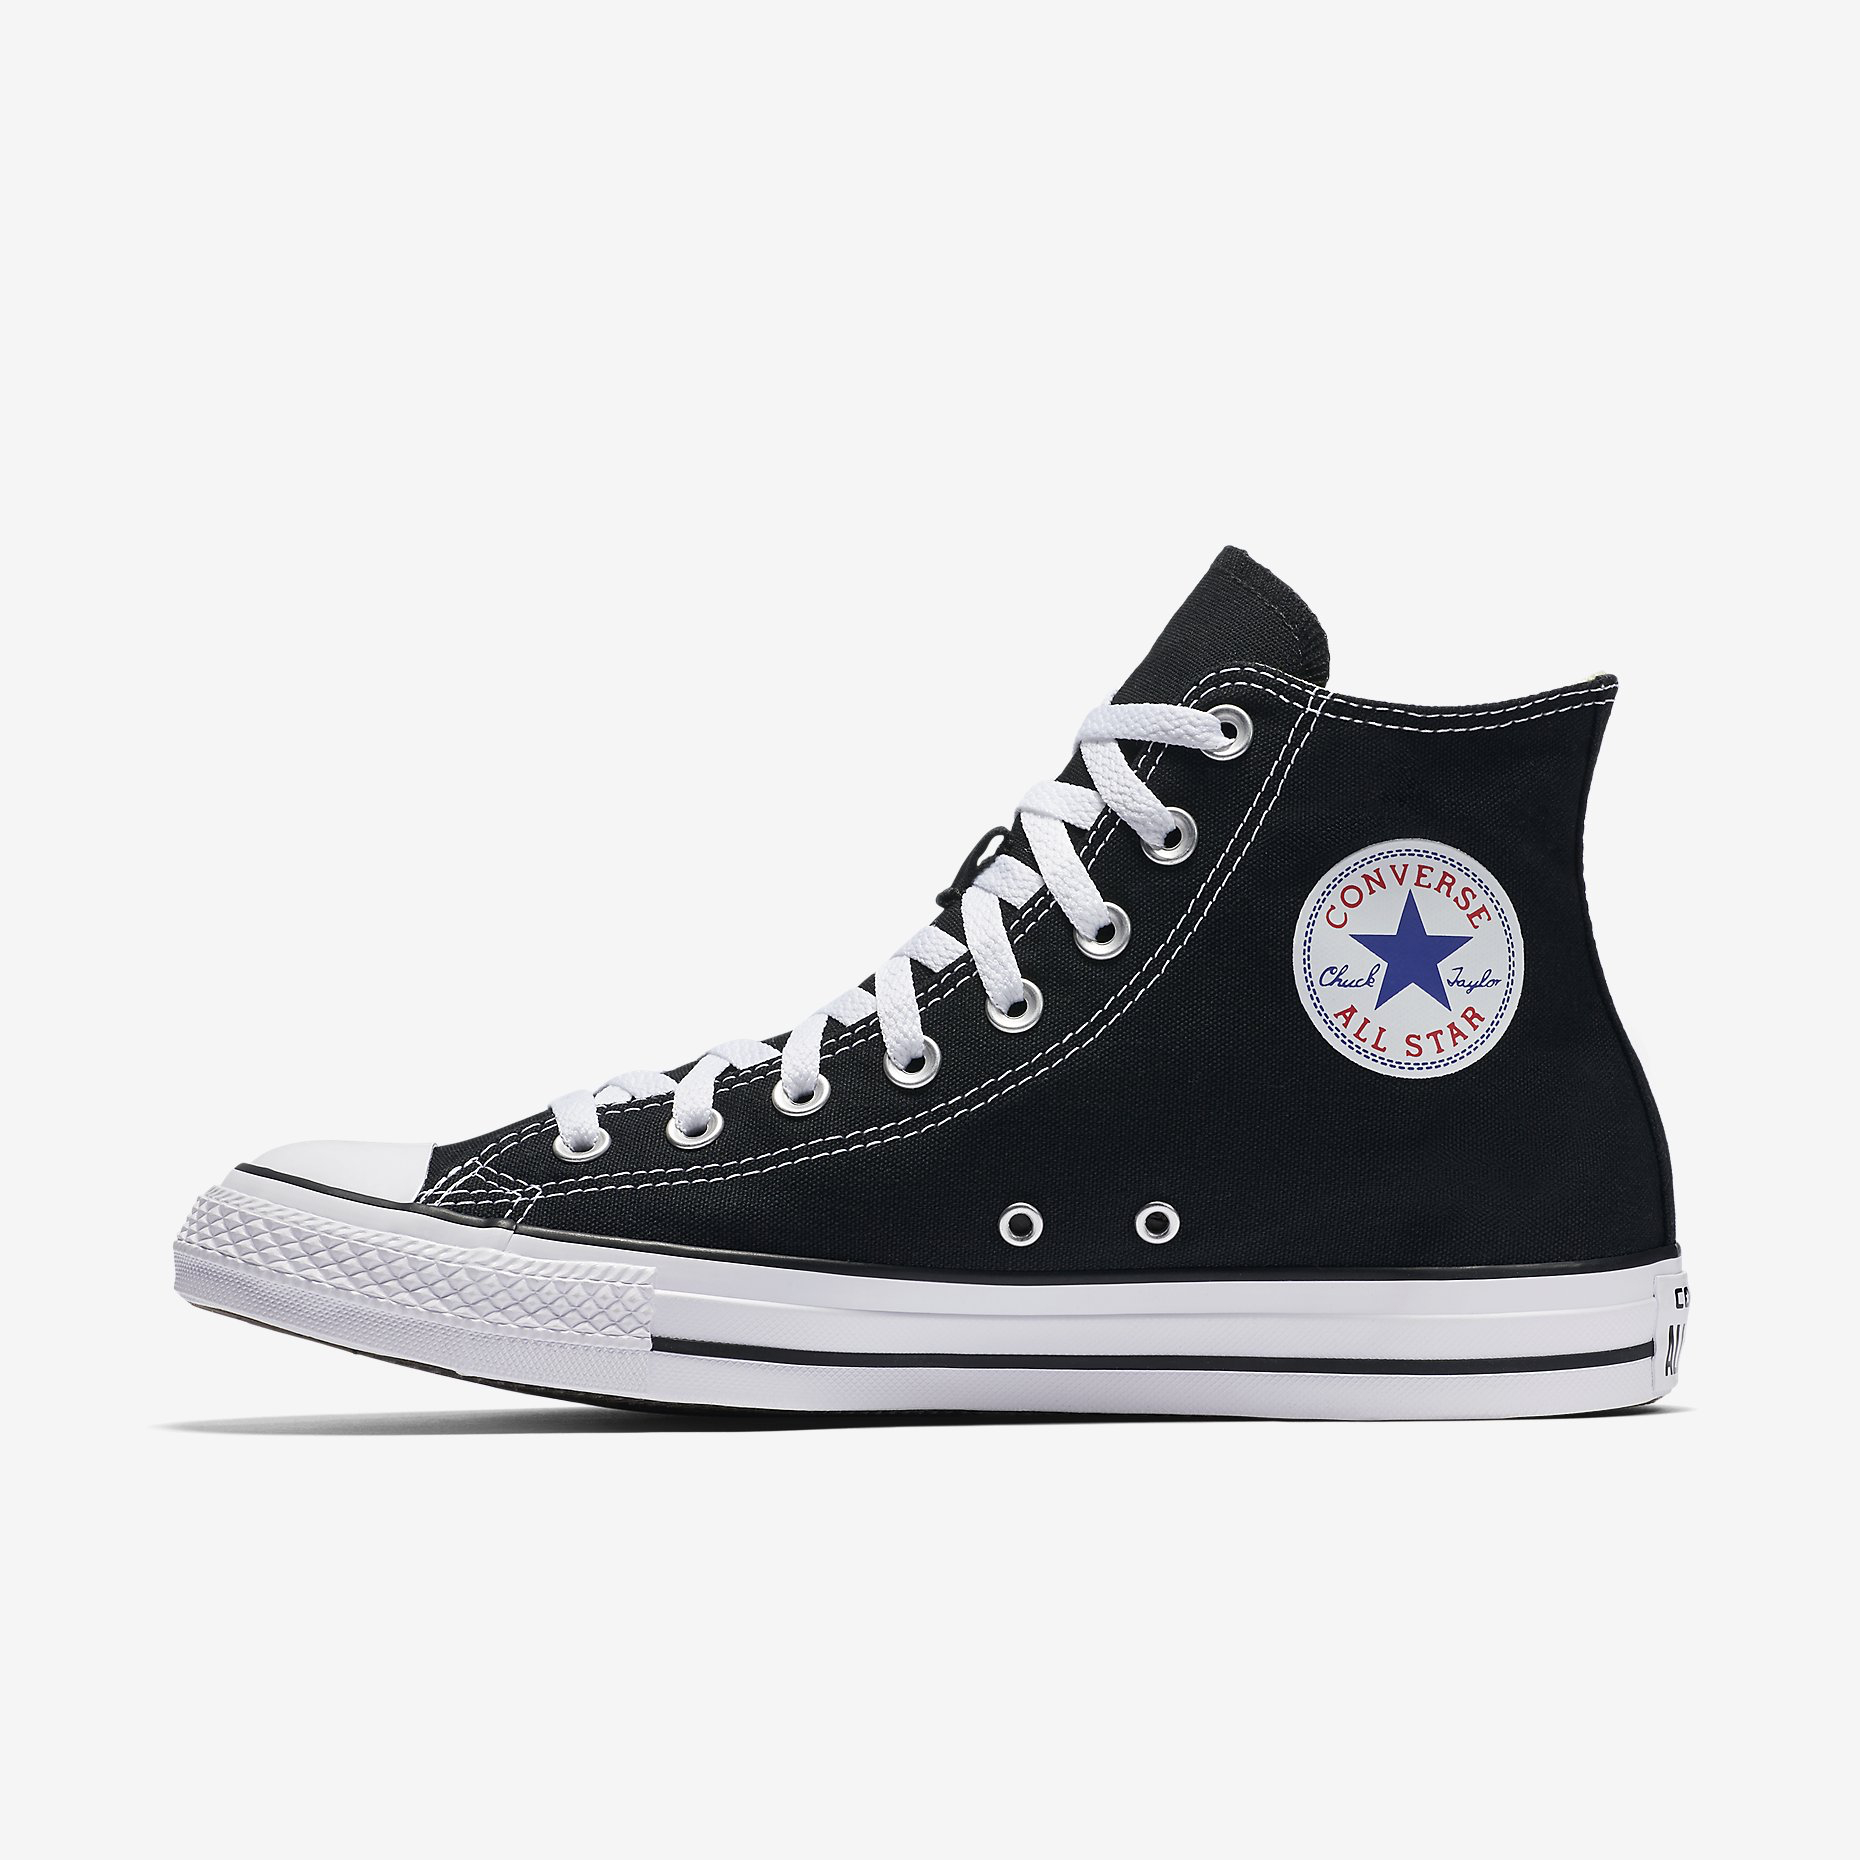 eb6a7afbdd25 Converse Chuck Taylor All Star Womens High Top Black in 2019 ...